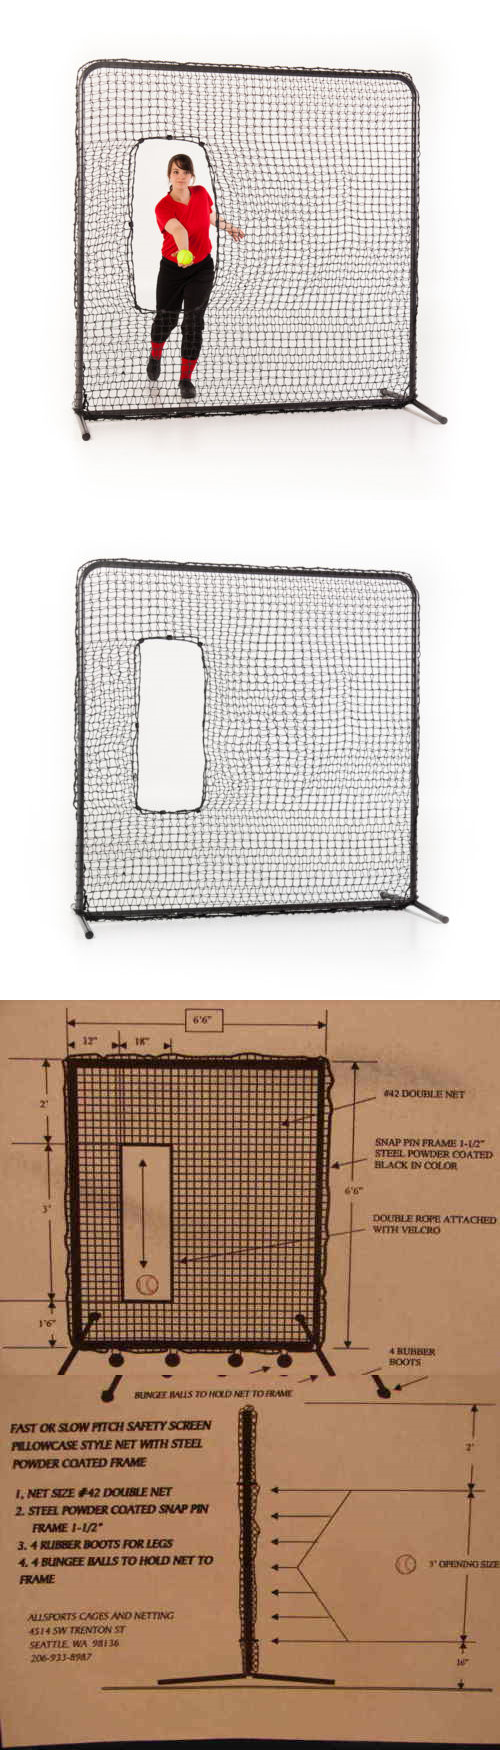 Batting Cages and Netting 50809: Softball Baseball Pitching Screen W ...